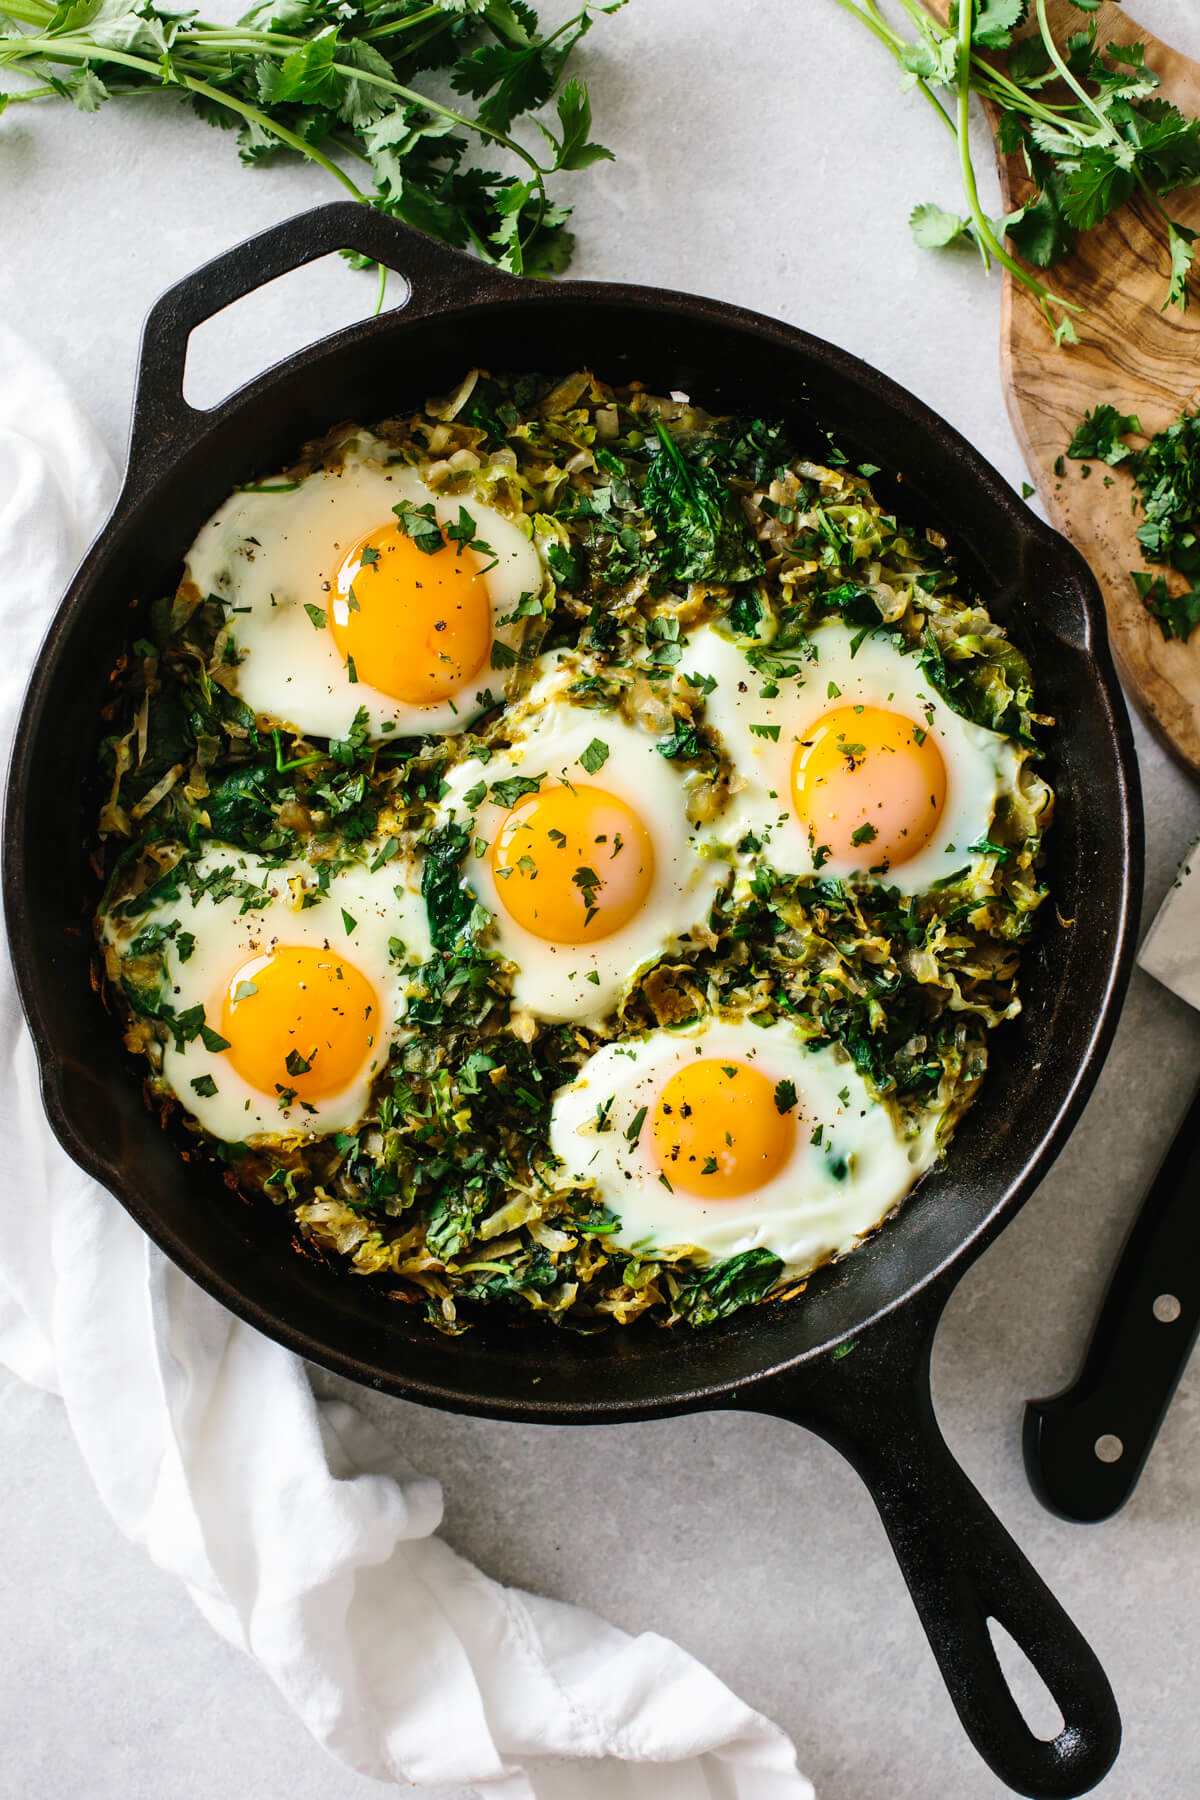 A cast iron pan filled with green shakshuka.